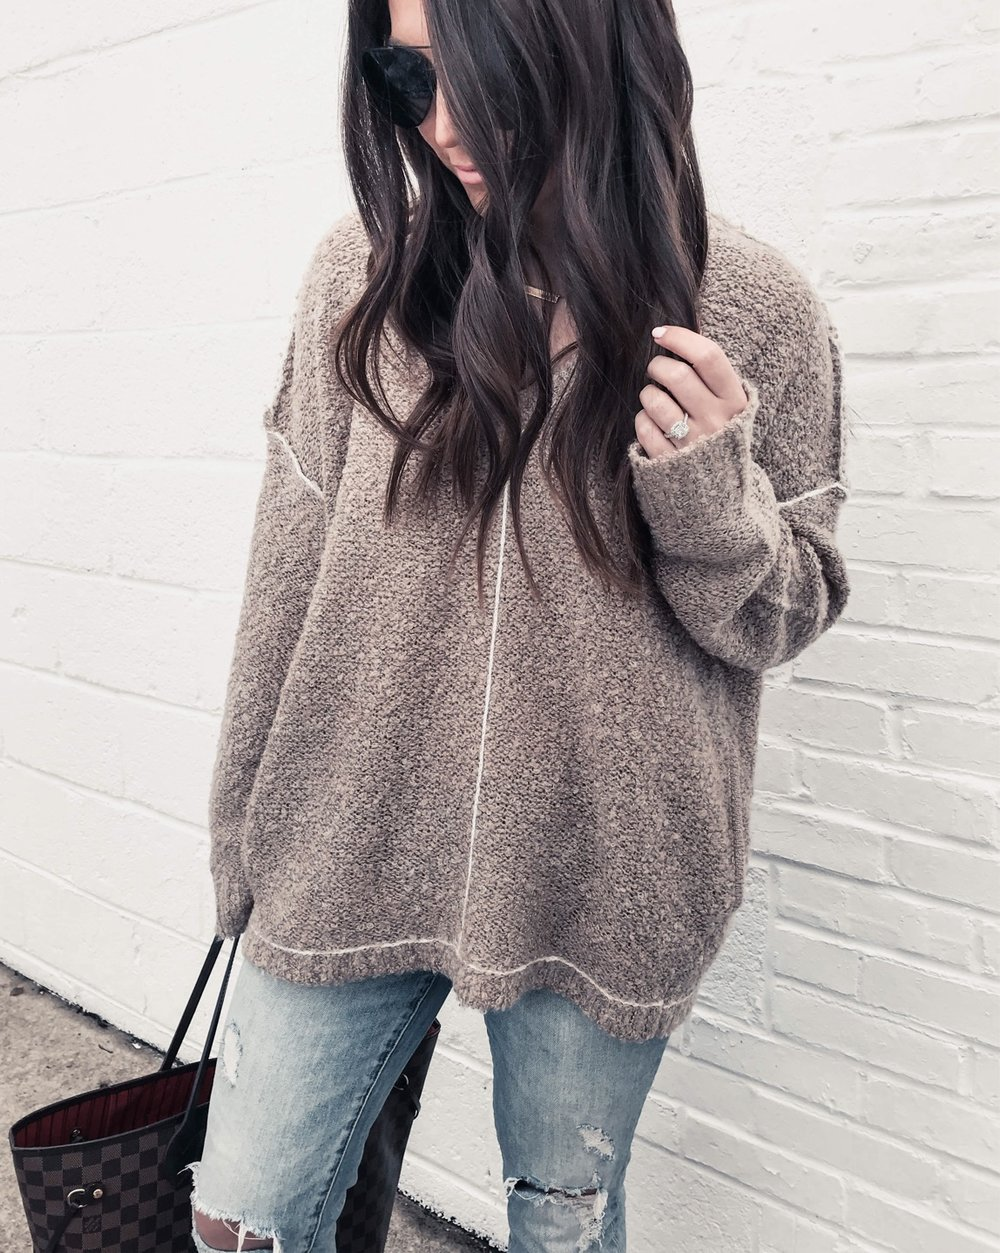 Instagram Round Up | Pine Barren Beauty | light weight sweater, spring transition outfit idea, cozy sweater, cozy vibes, outfit of the day